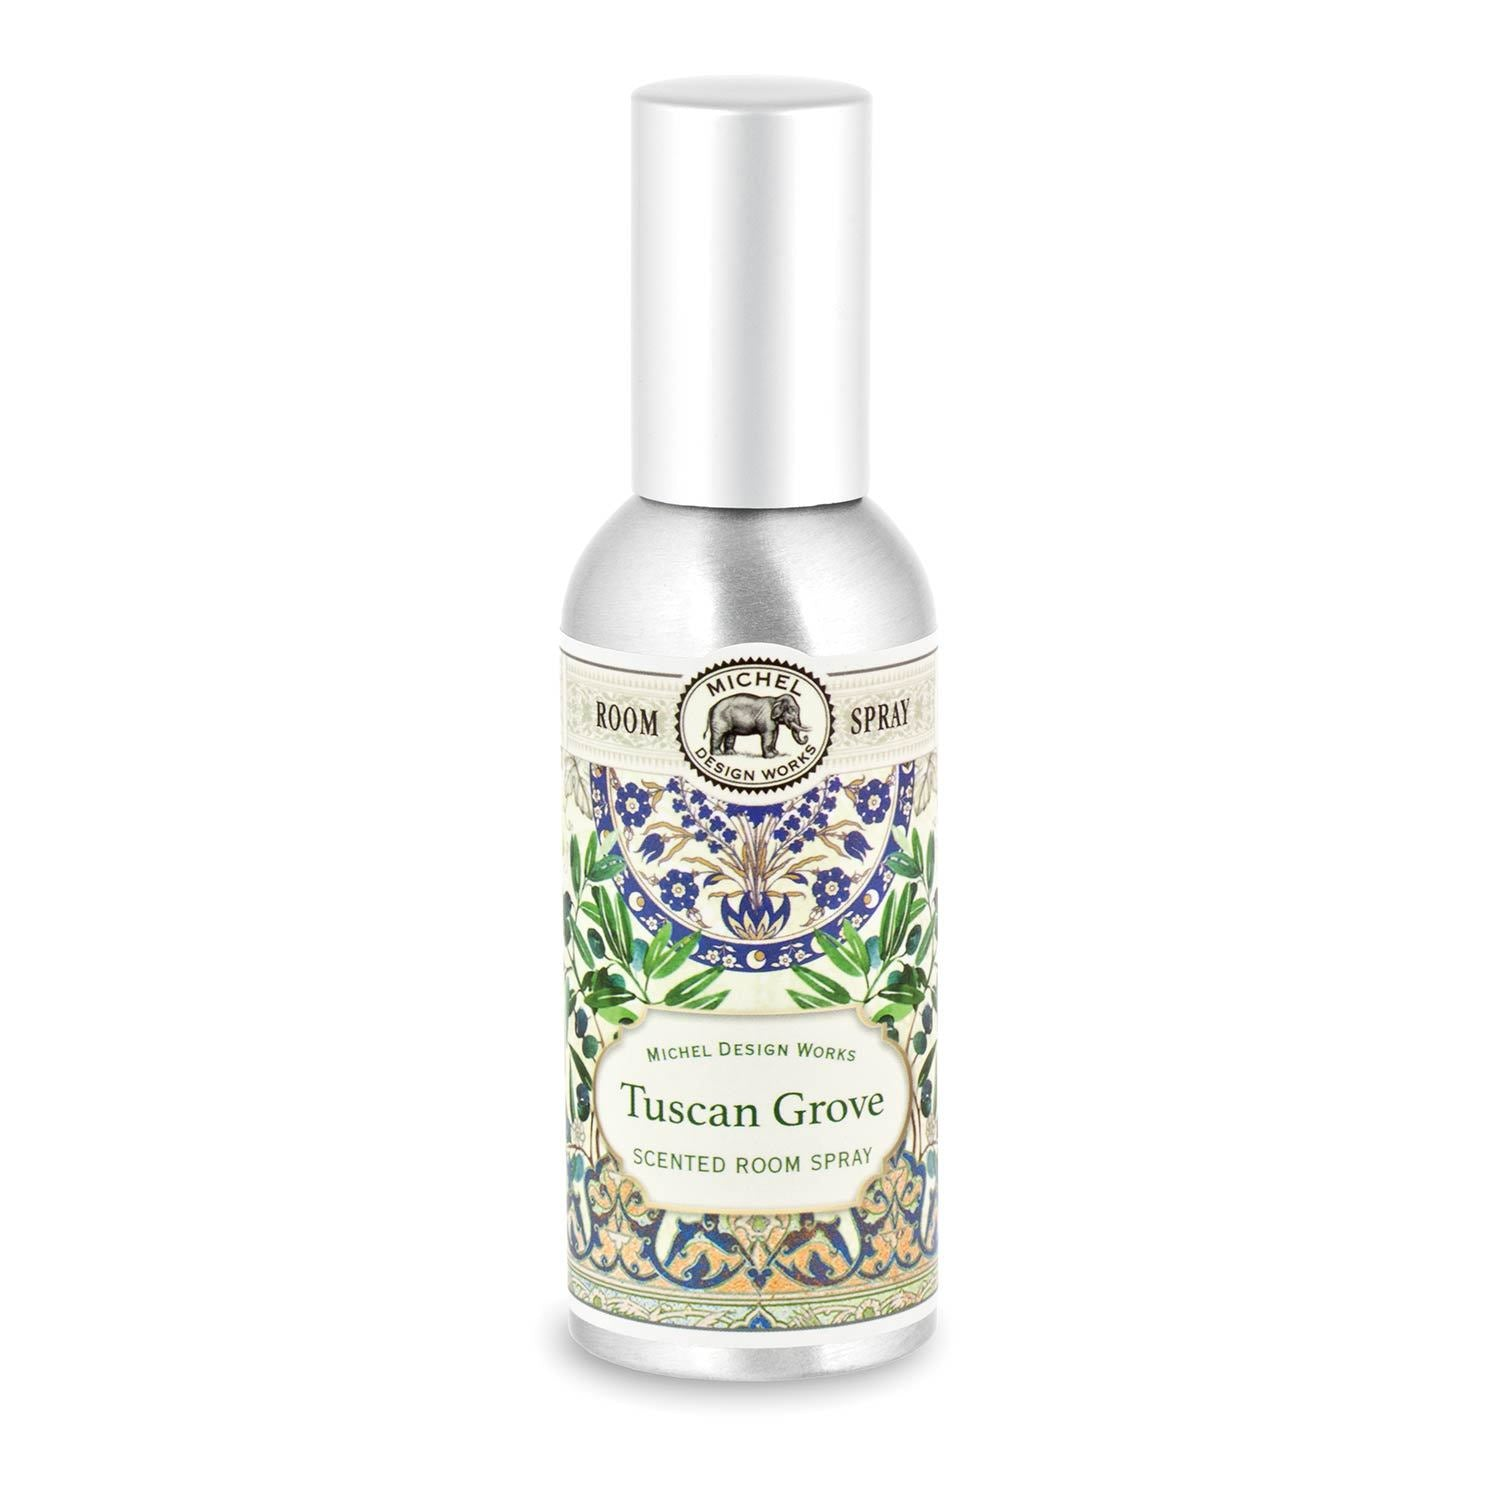 Tuscan Grove Room Spray